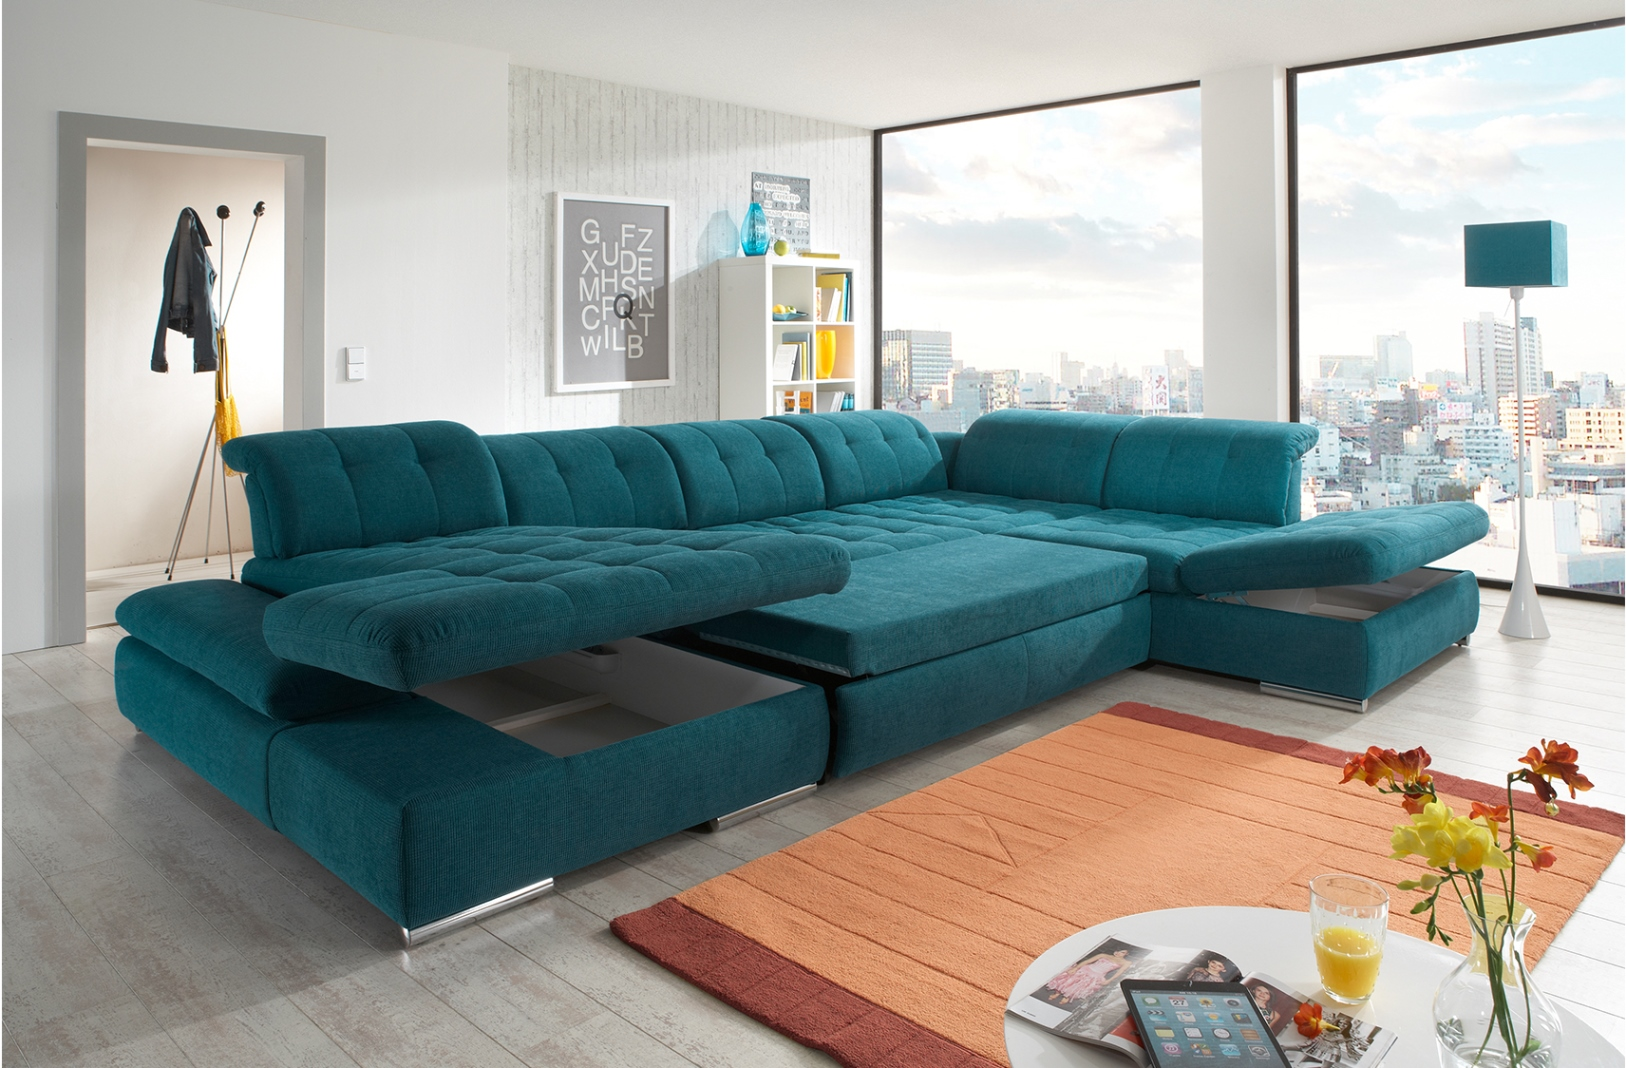 exclusive arianne modular spain sofas fama sofa by at modern furniture connecticut microfiber sectional cado